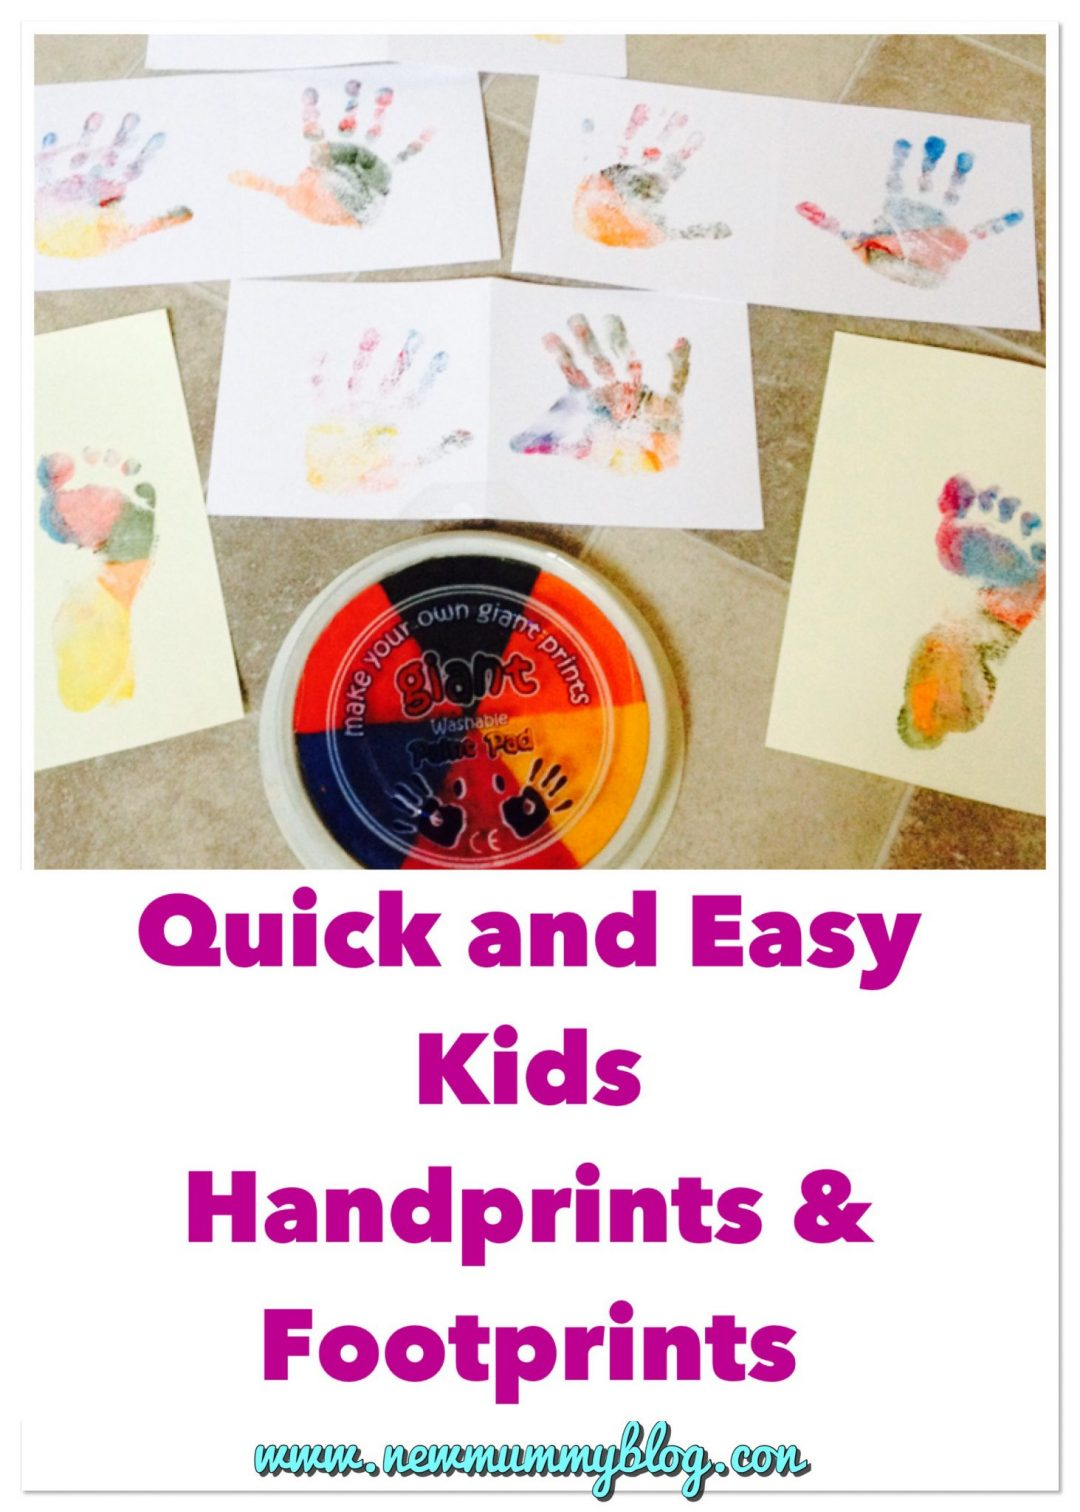 Quick and easy handprints and footprints - kids crafts and art - perfect gifts for family and grandparents